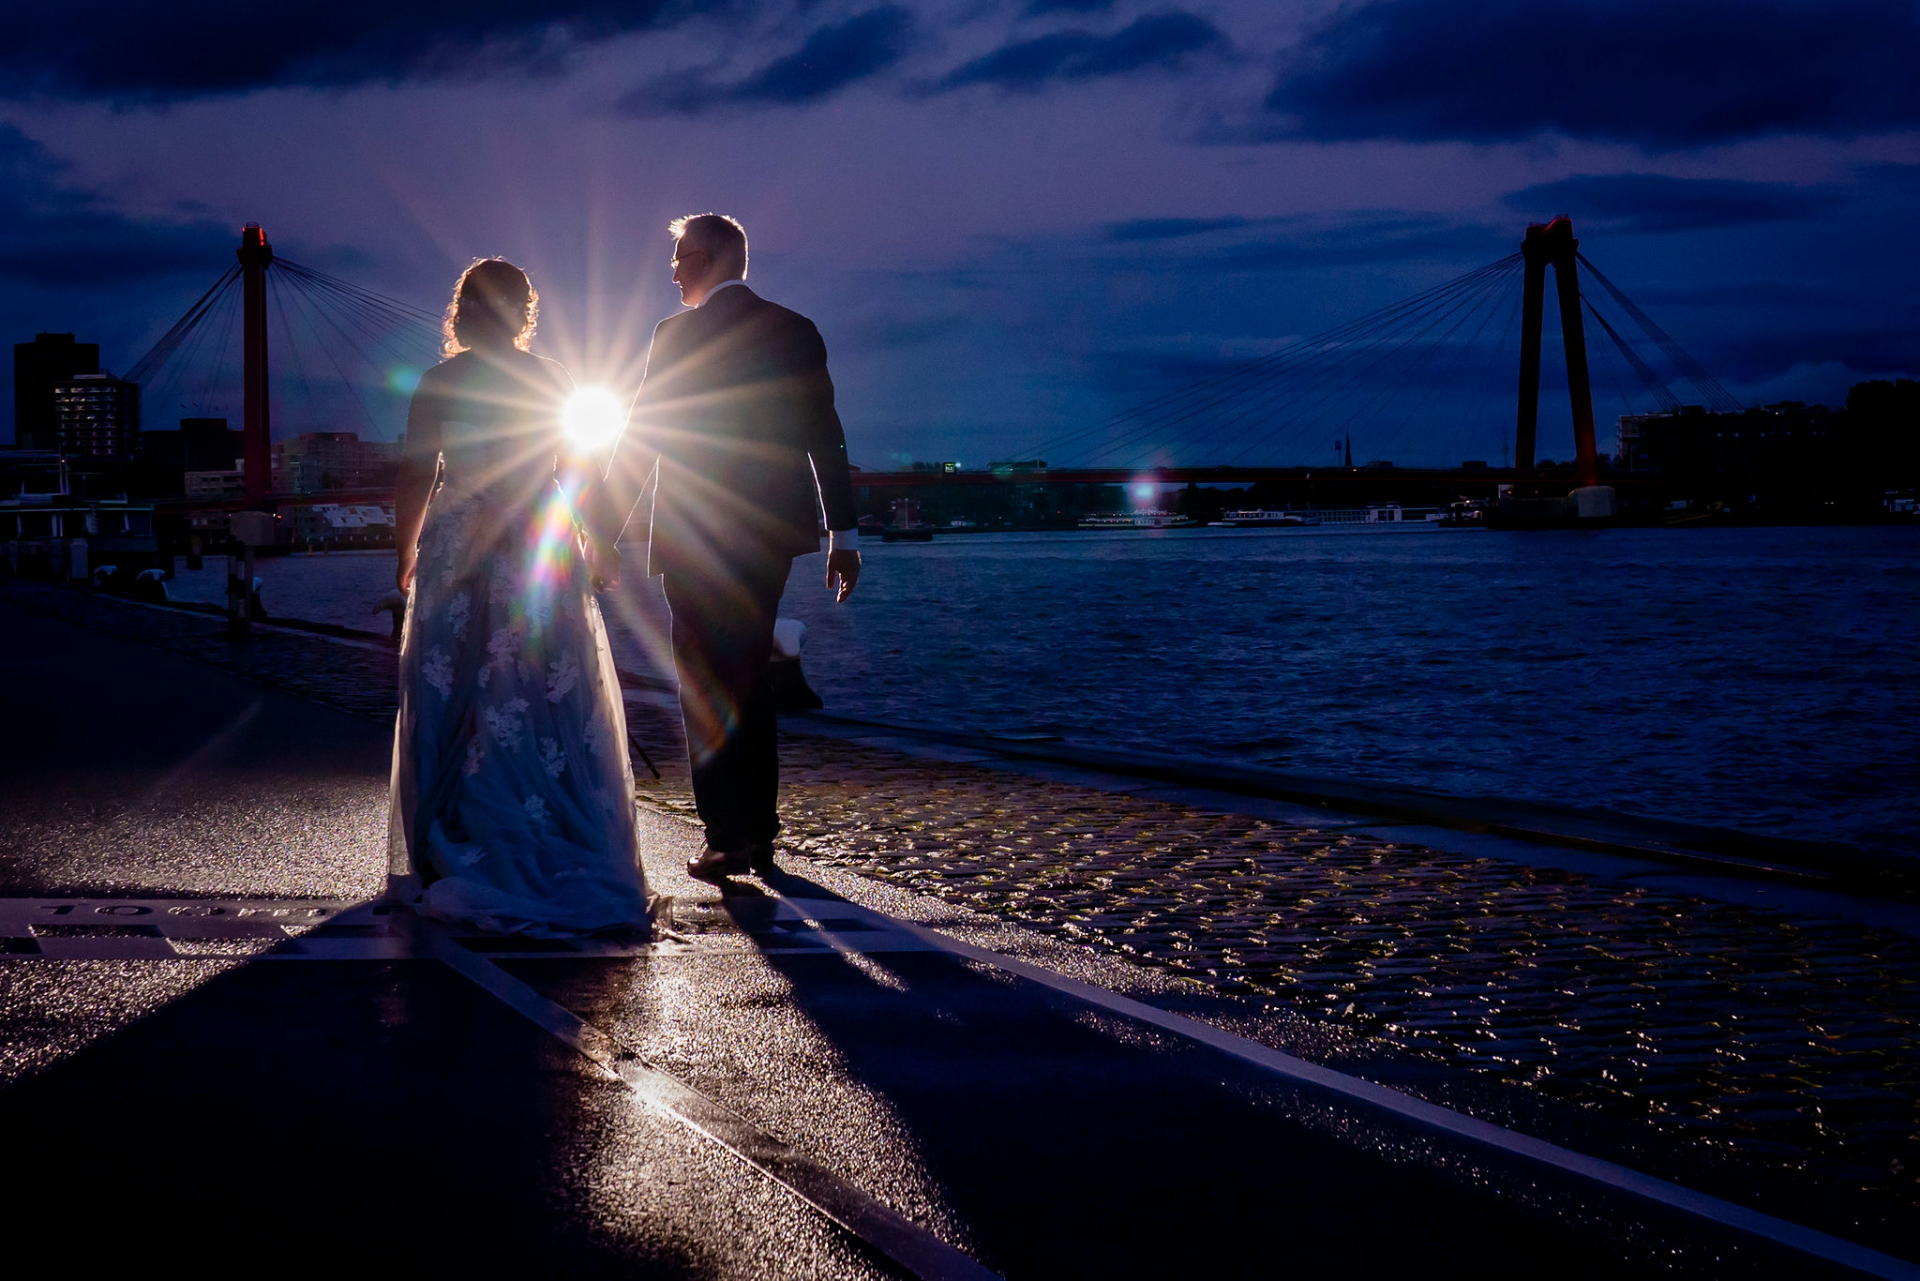 Wedding Photography - Rotterdam, Netherlands | The newlywed couple shares a romantic walk along the riverfront for portraits